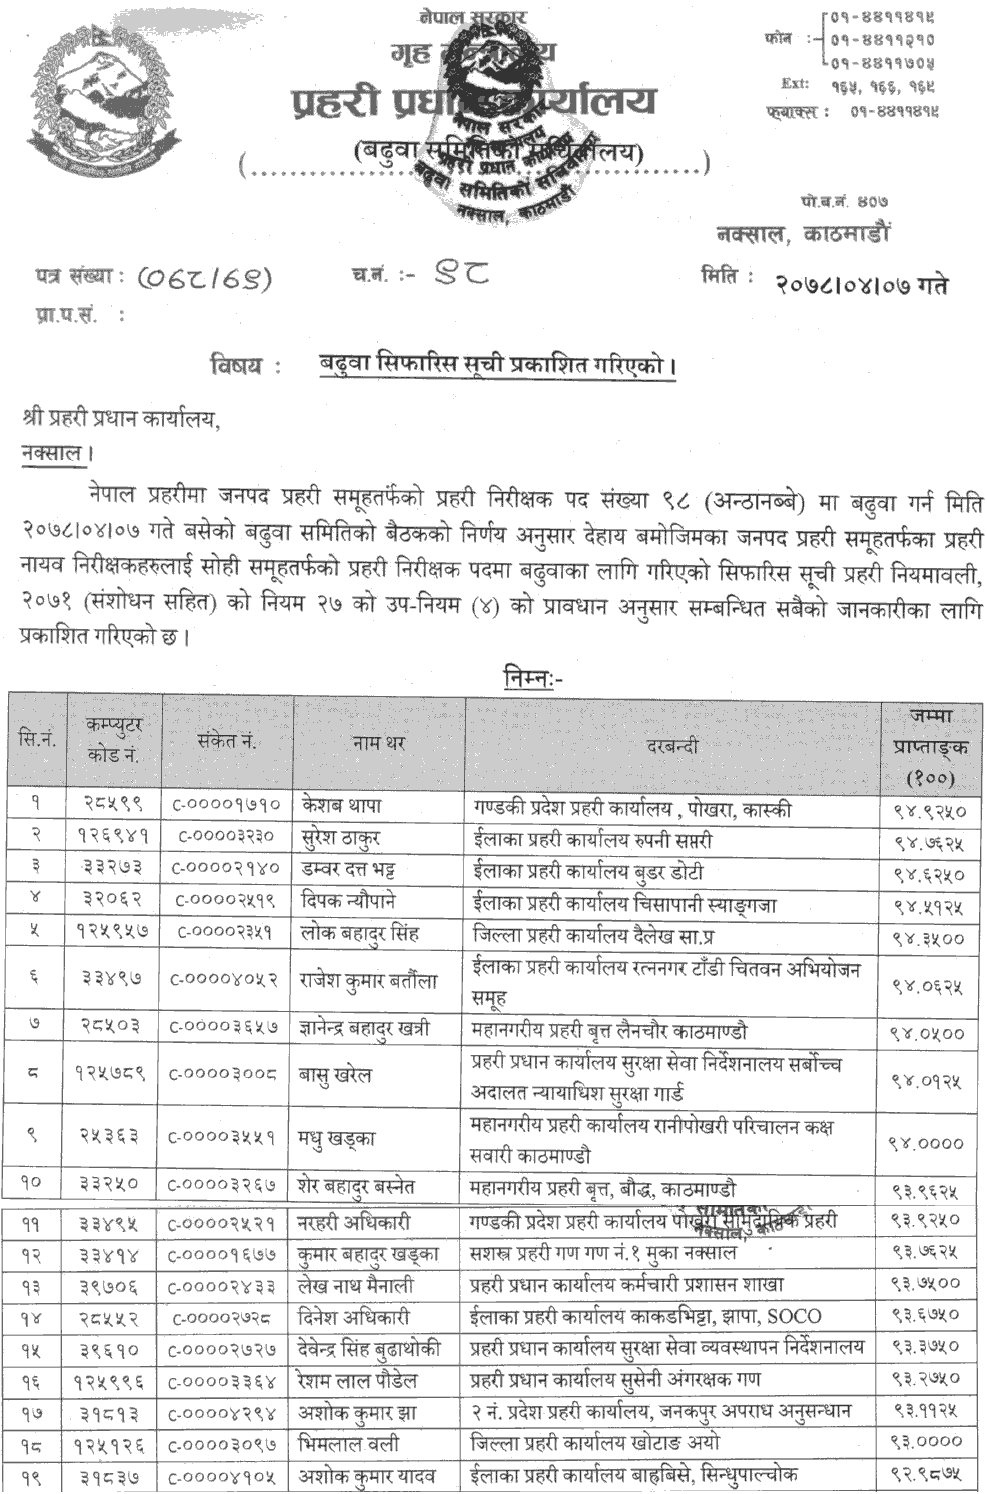 Nepal Police Inspector Promotion and Recommendation List